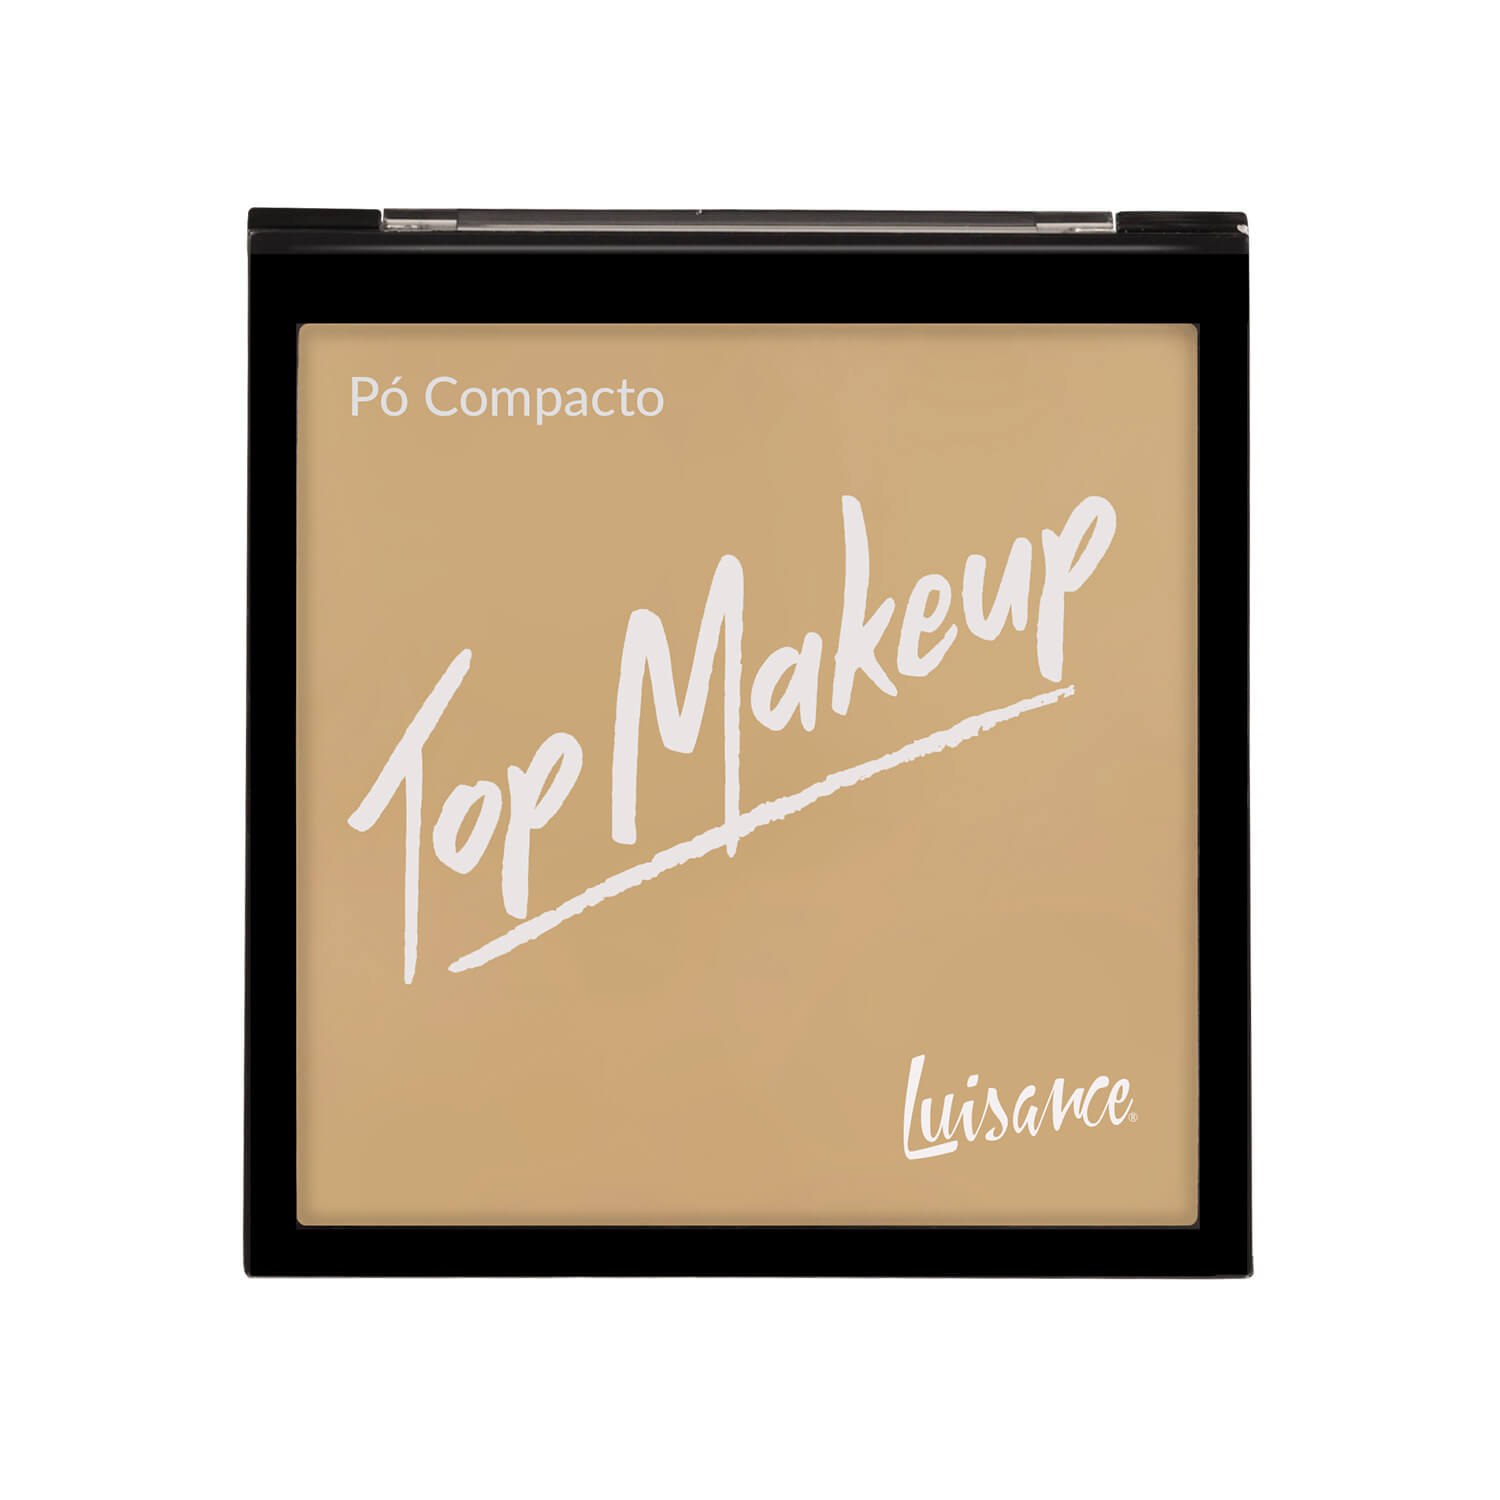 Pó Compacto Top Makeup